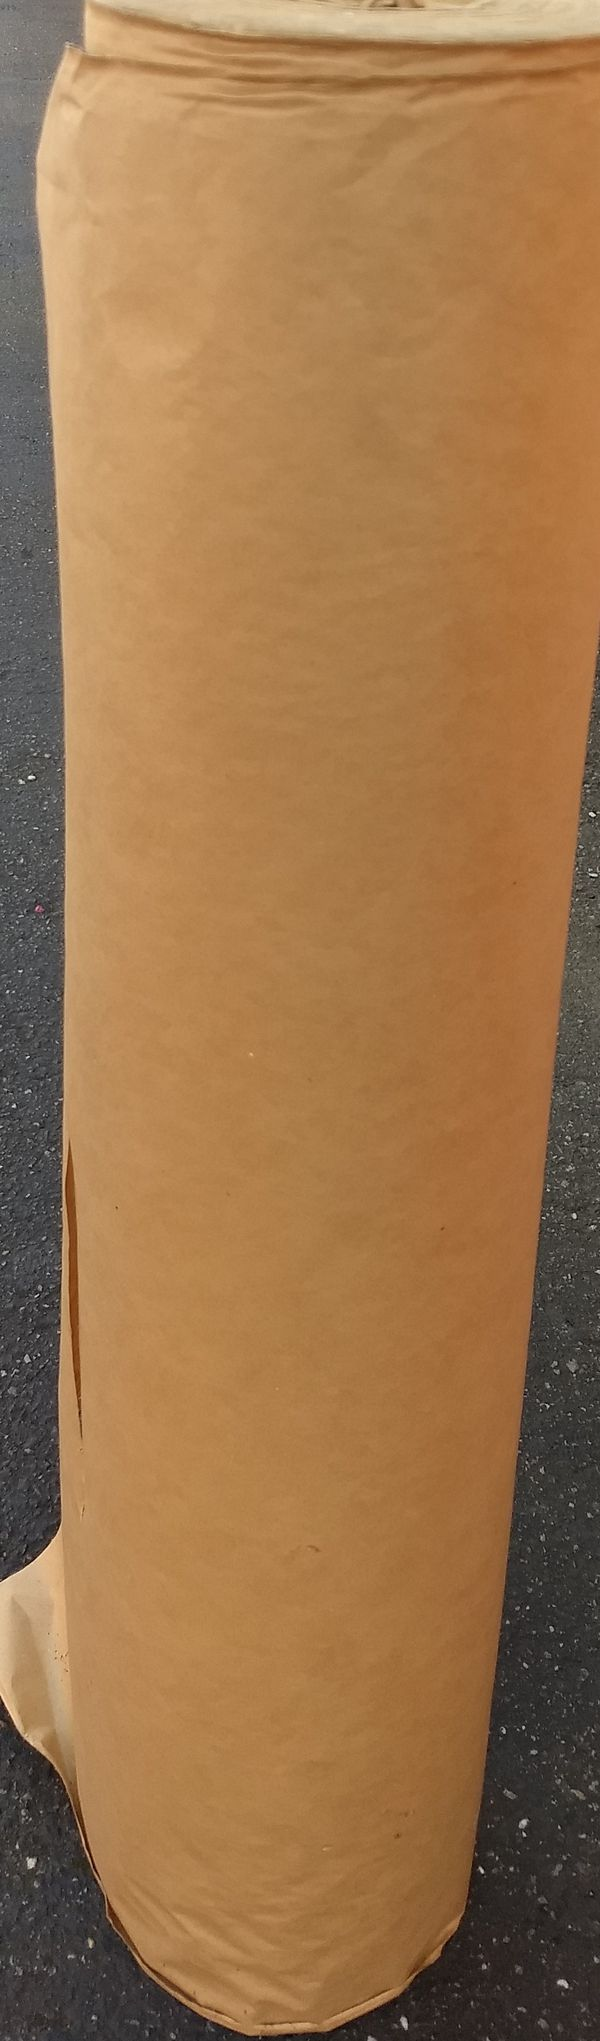 3 FEET WIDE ROLL BROWN BUTCHER PAPER